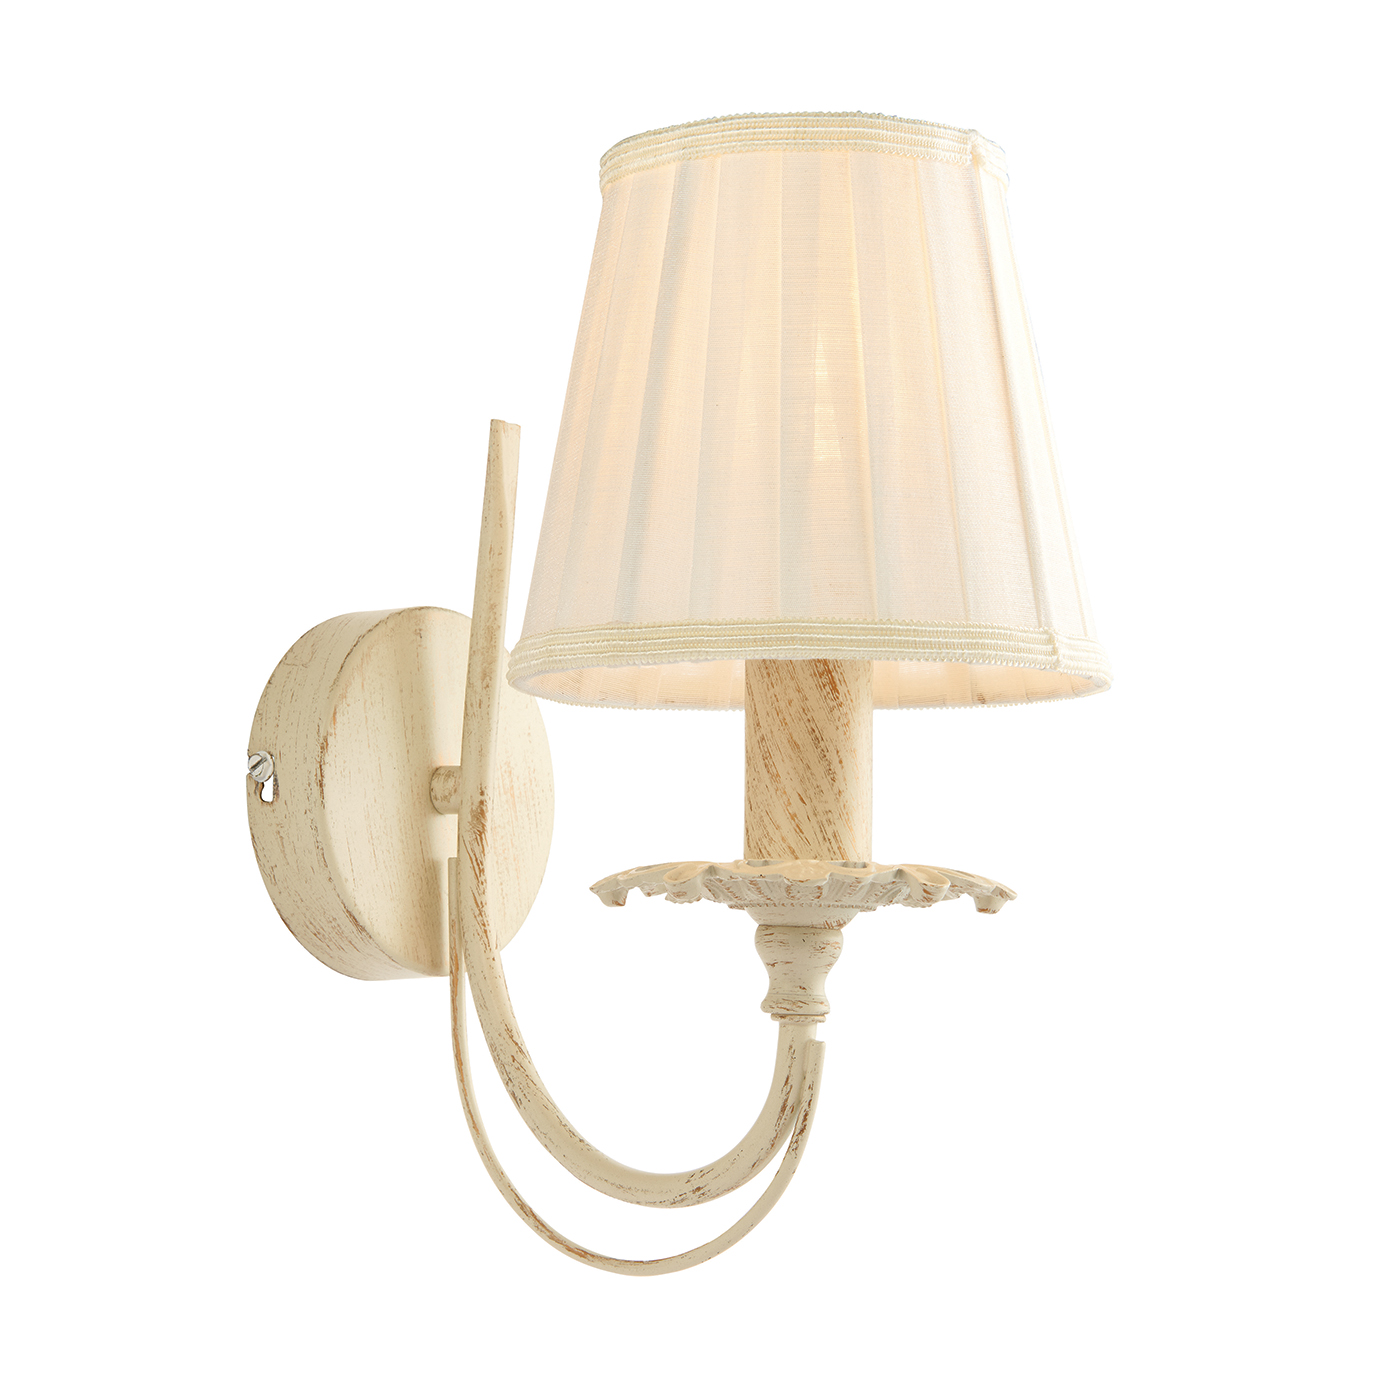 Endon 60929 Chester Wall Light 1x40W Crm